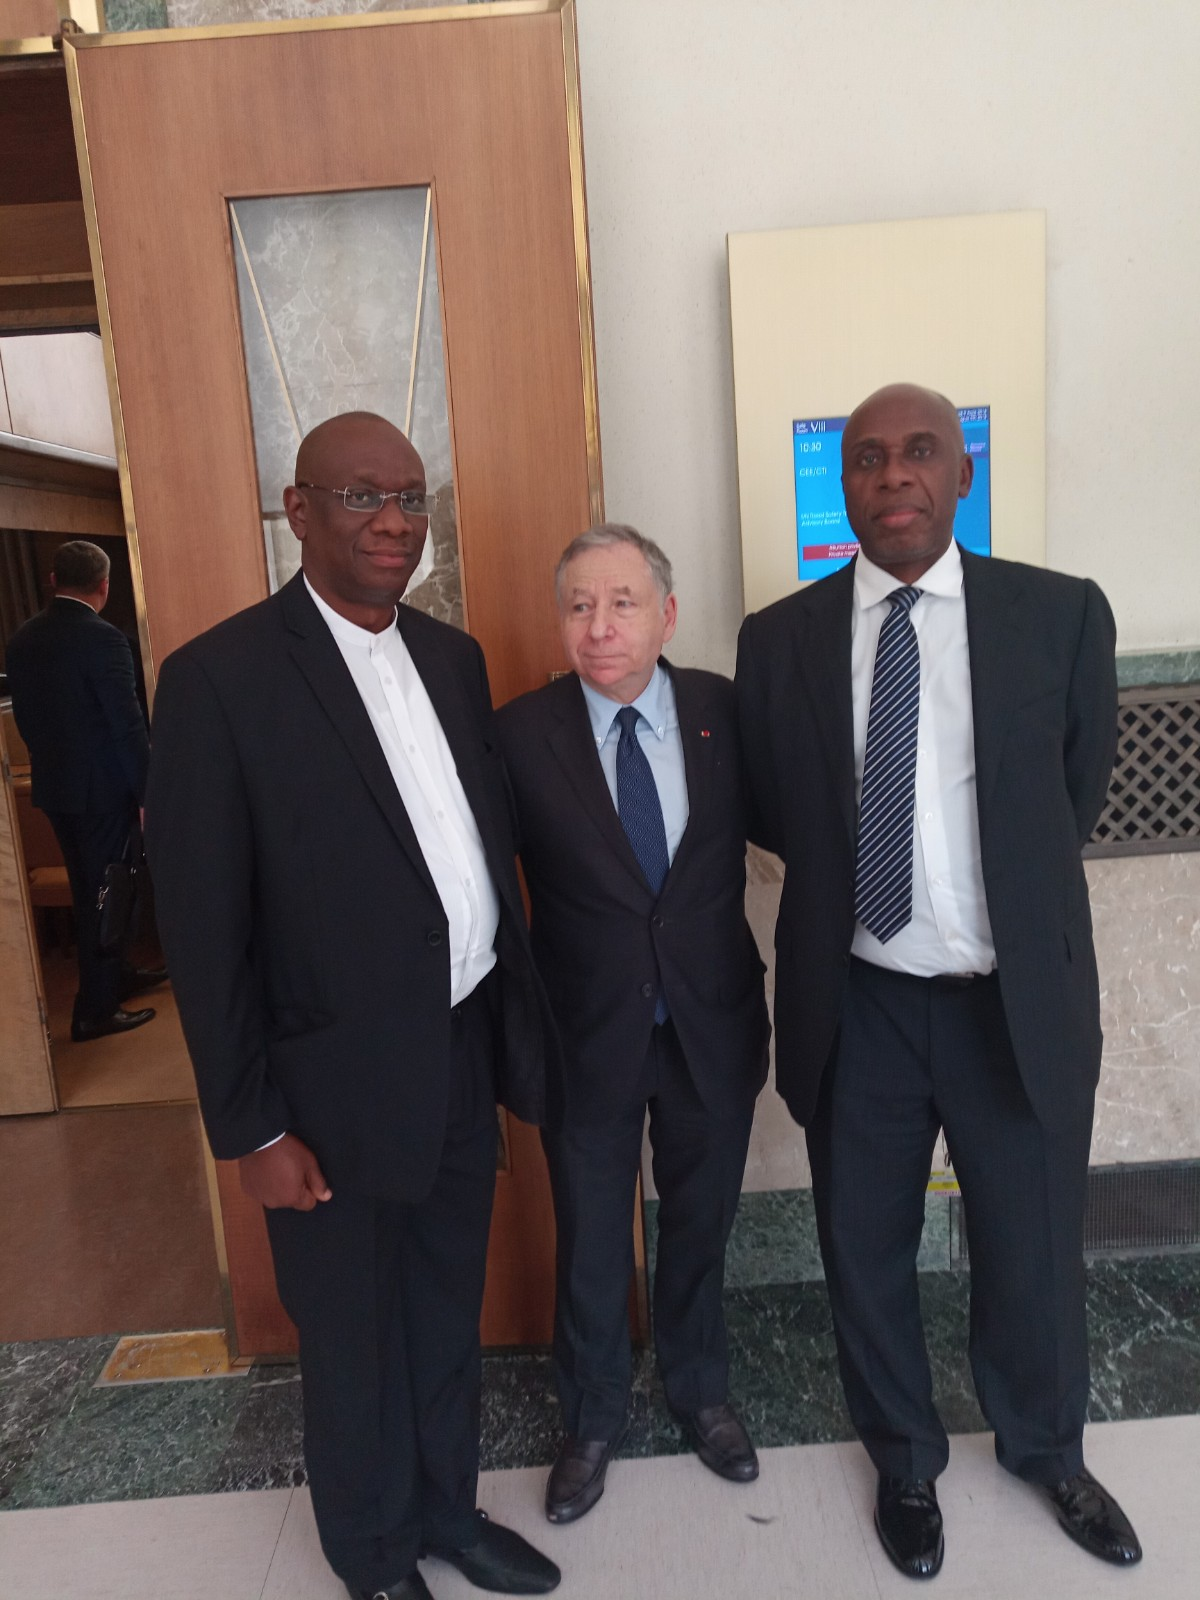 Hon Minister of Transportation, Rotimi Amaechi, The UN Special Envoy on Road Safety, Mr. Jean Todt and the Corp Mashall of the Federation, Mr. Boboye Oyeyemi at the inauguration of the UN Road Safety Trust Fund Advis